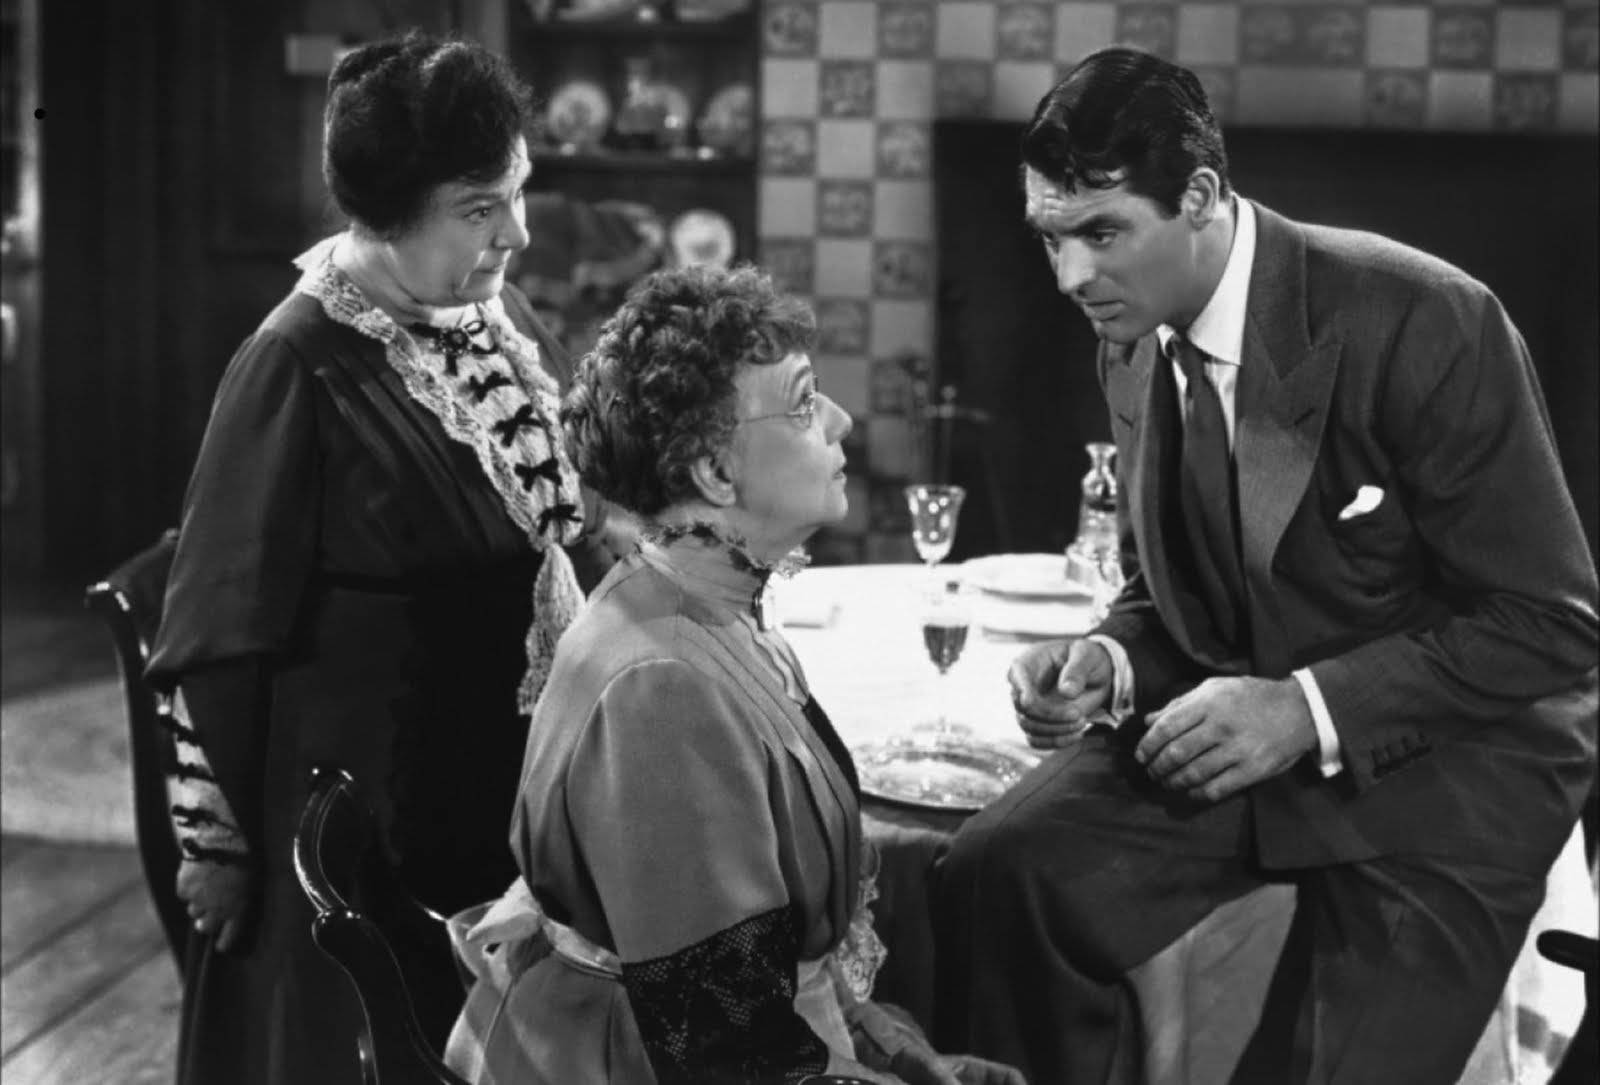 essay on arsenic and old lace Arsenic and old lace is a 1944 american  she had taken the code name arsenic, making the pair arsenic and old lace,  to essay general-purpose.